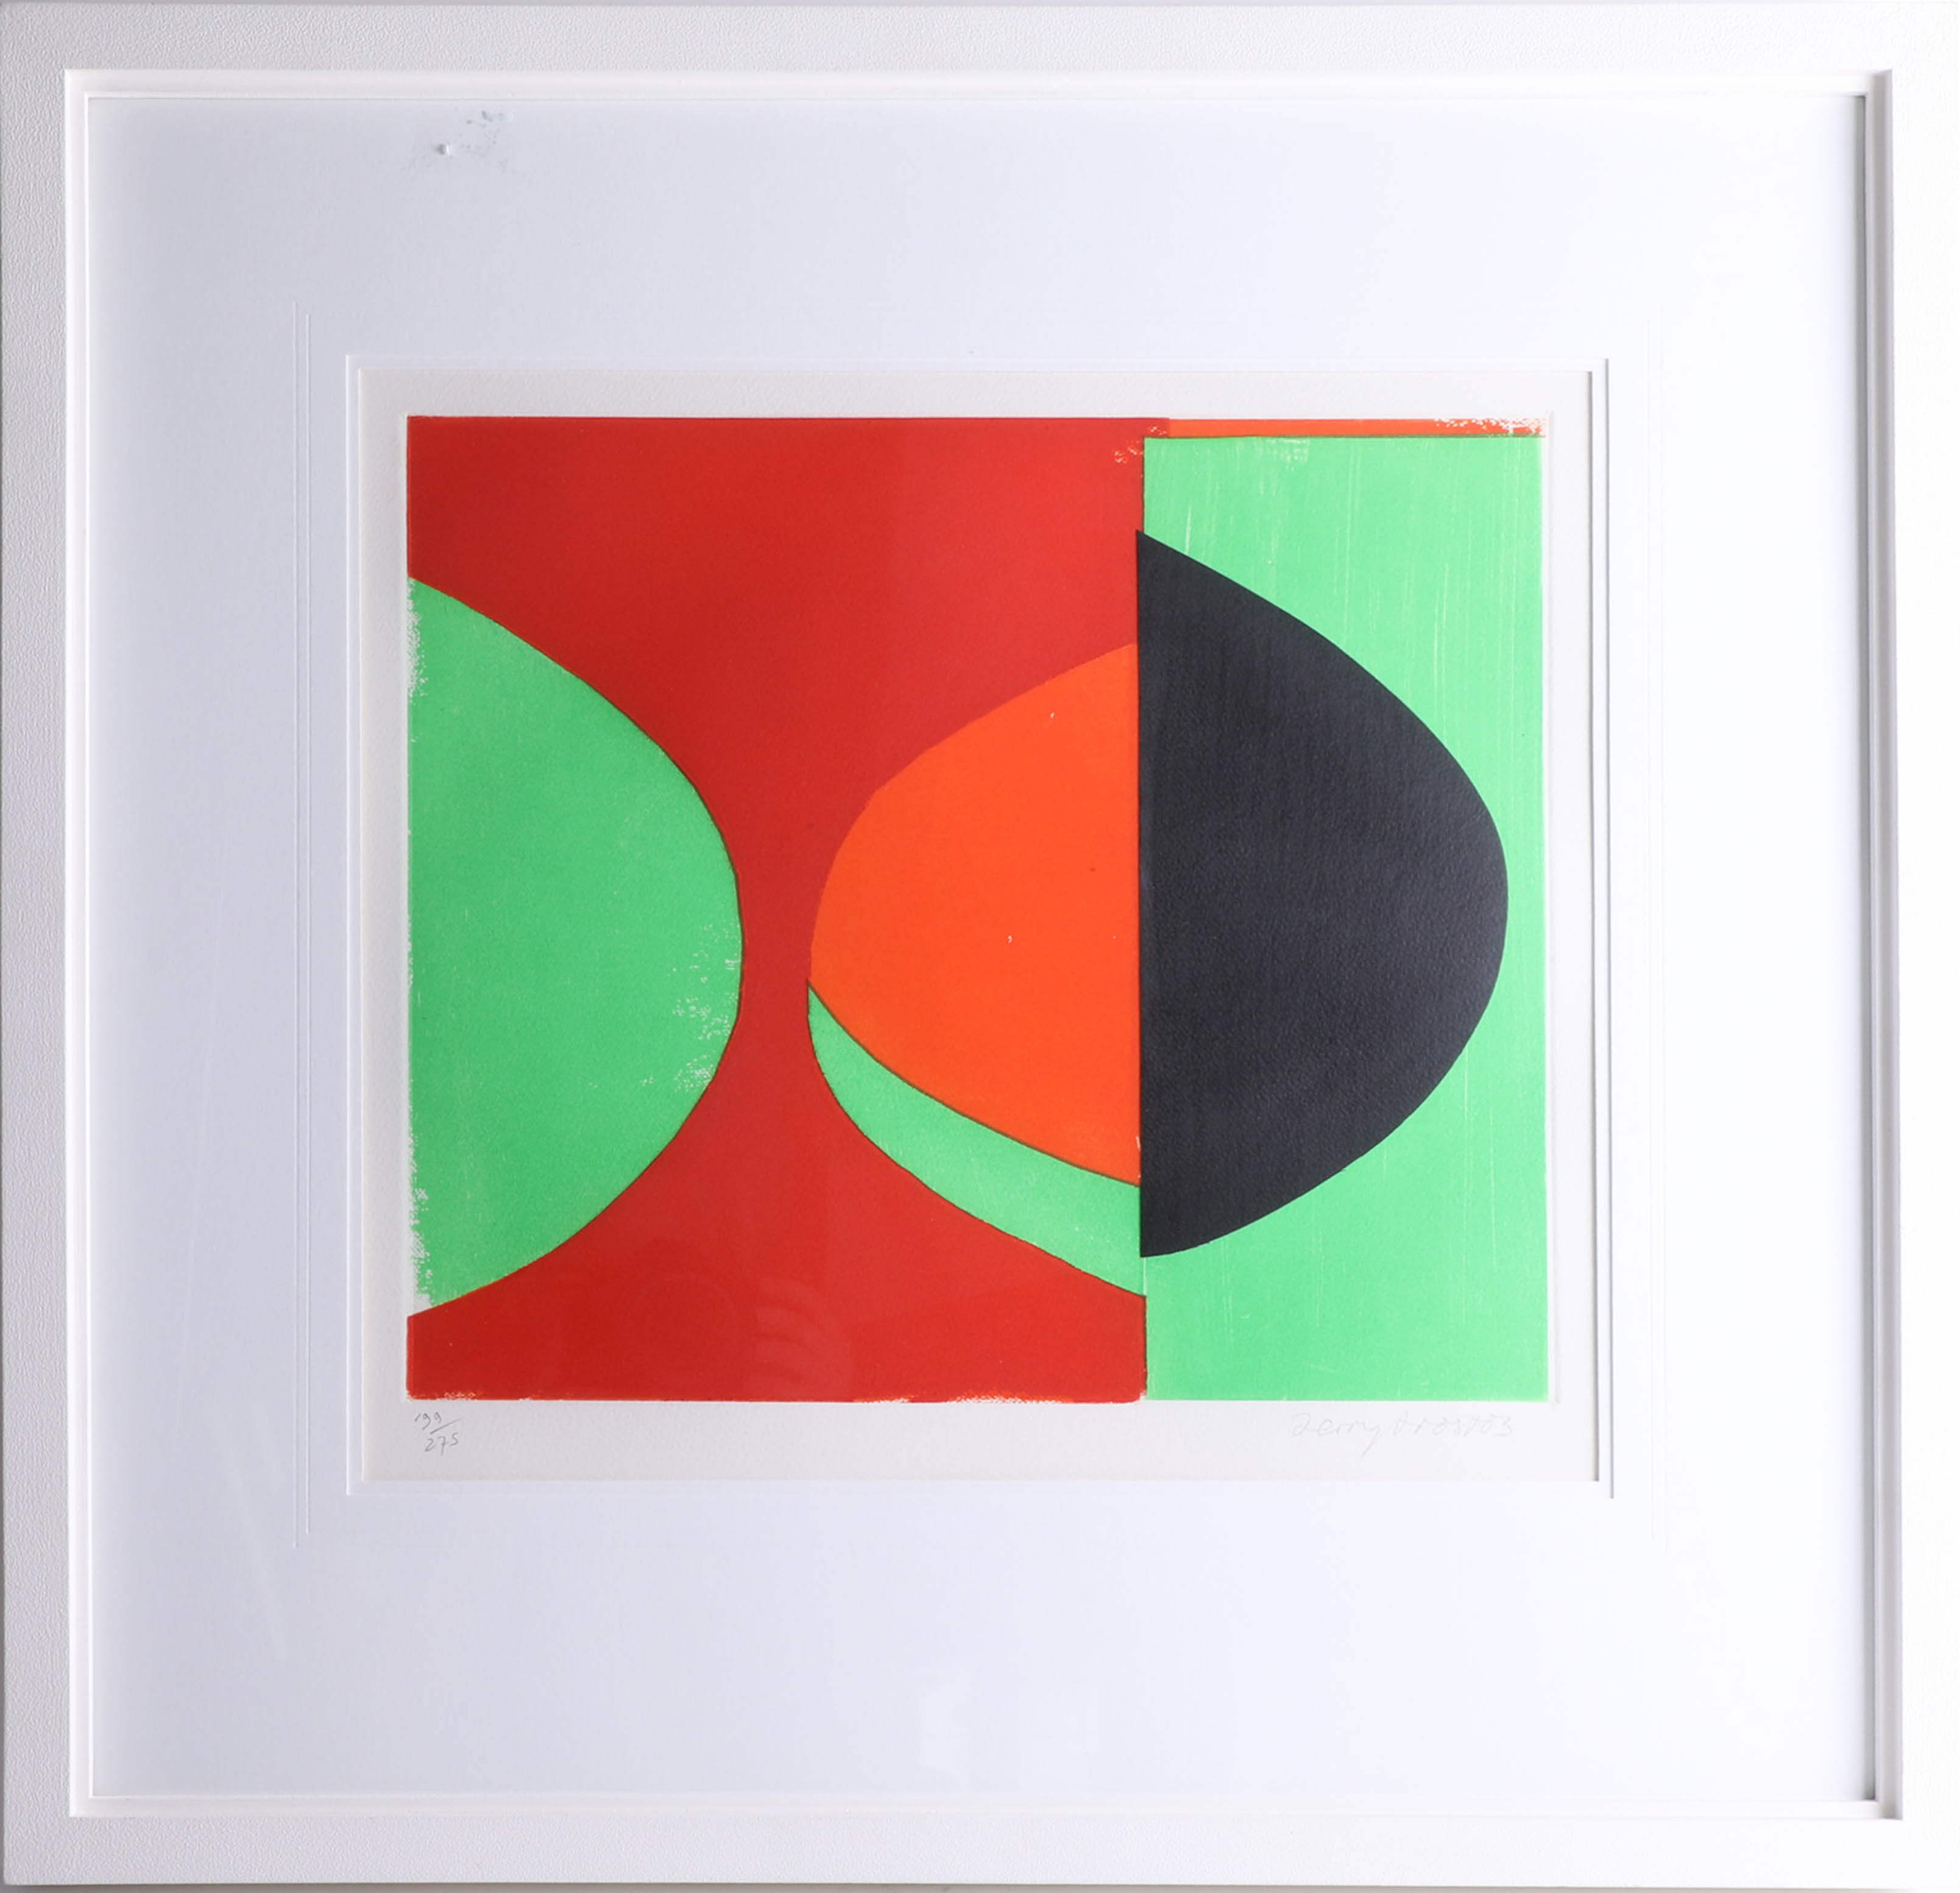 Lot 023 - Sir Terry Frost R.A. (British, 1915-2003), original print 'Camberwell Green' 2001-2003, numbered